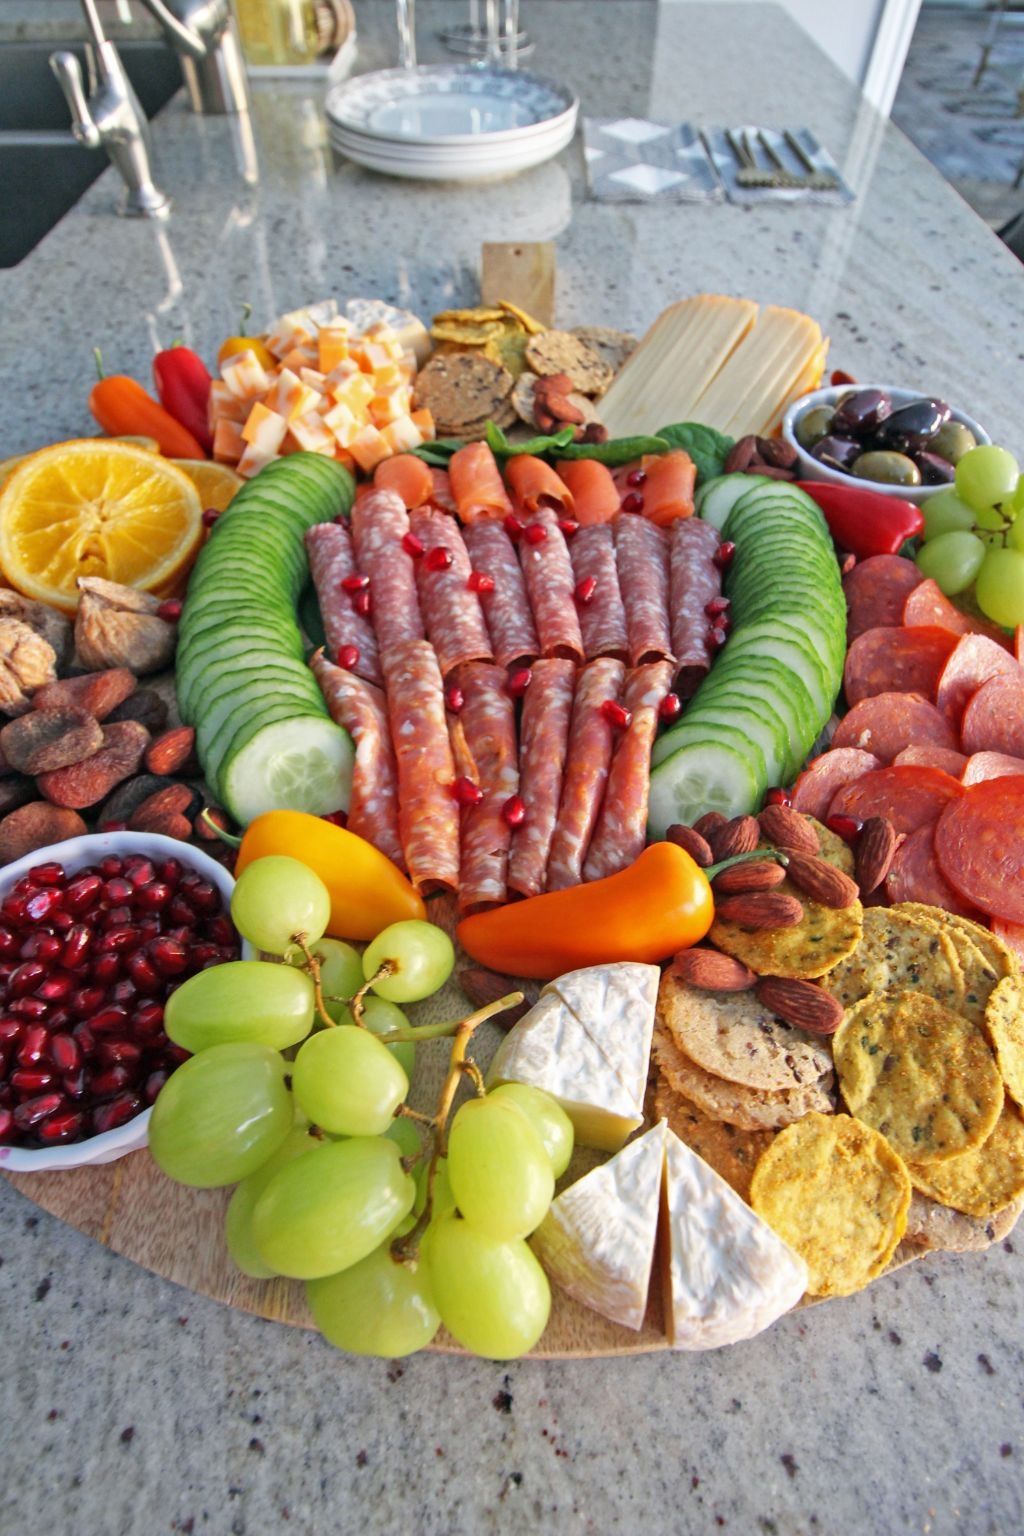 Our Charcuterie board when entertaining guests